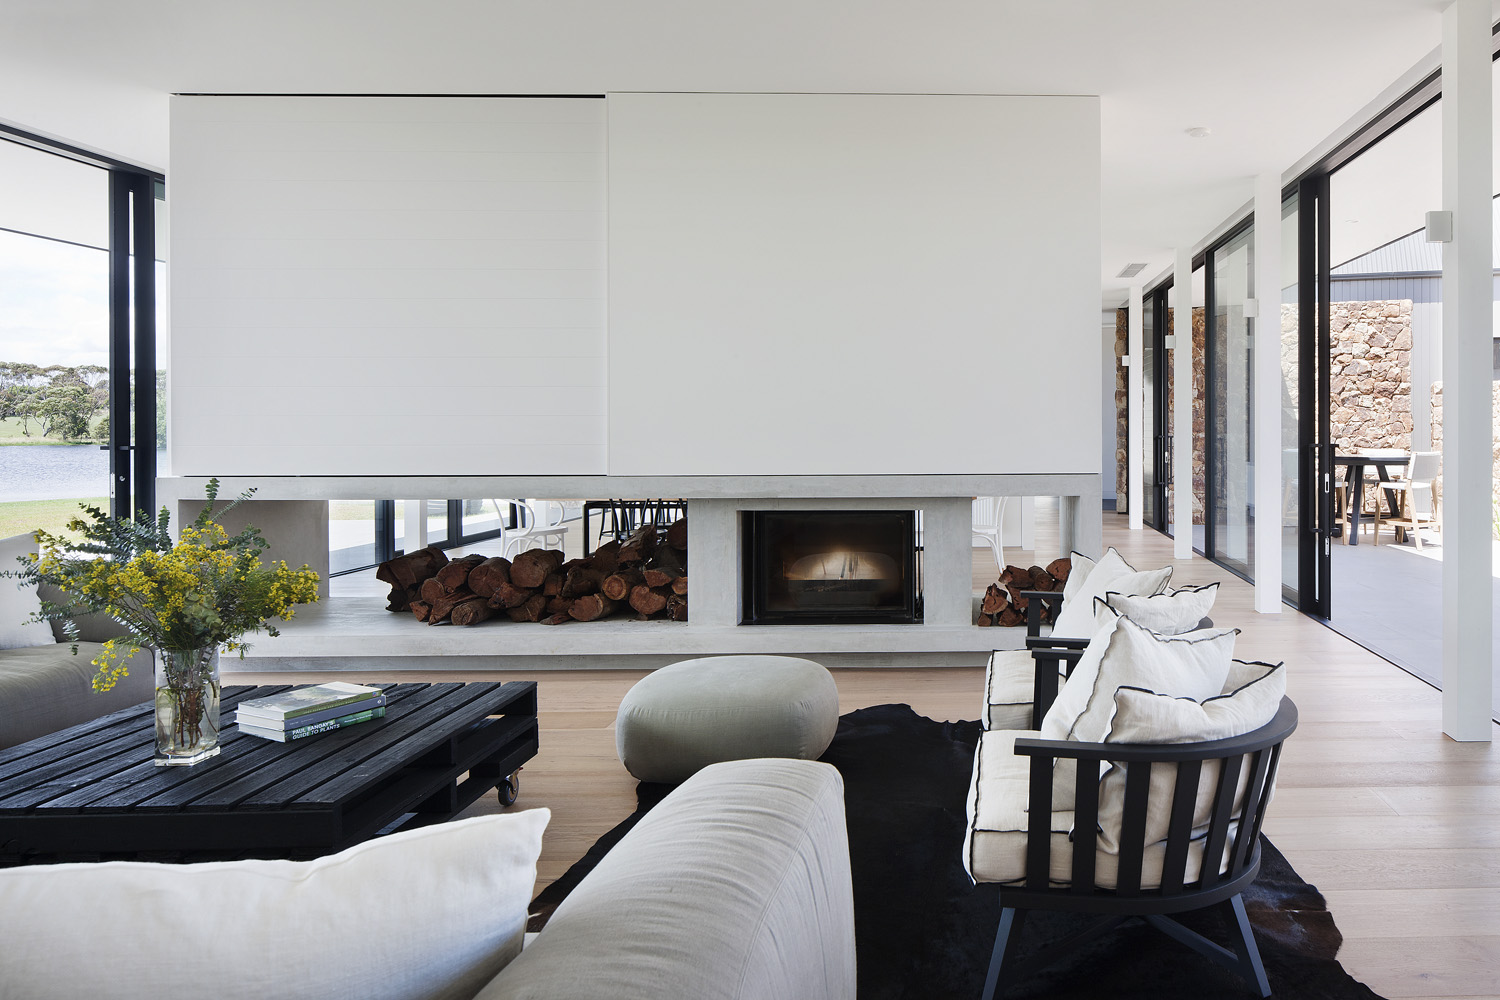 A neutral interior lets the features of the home shine